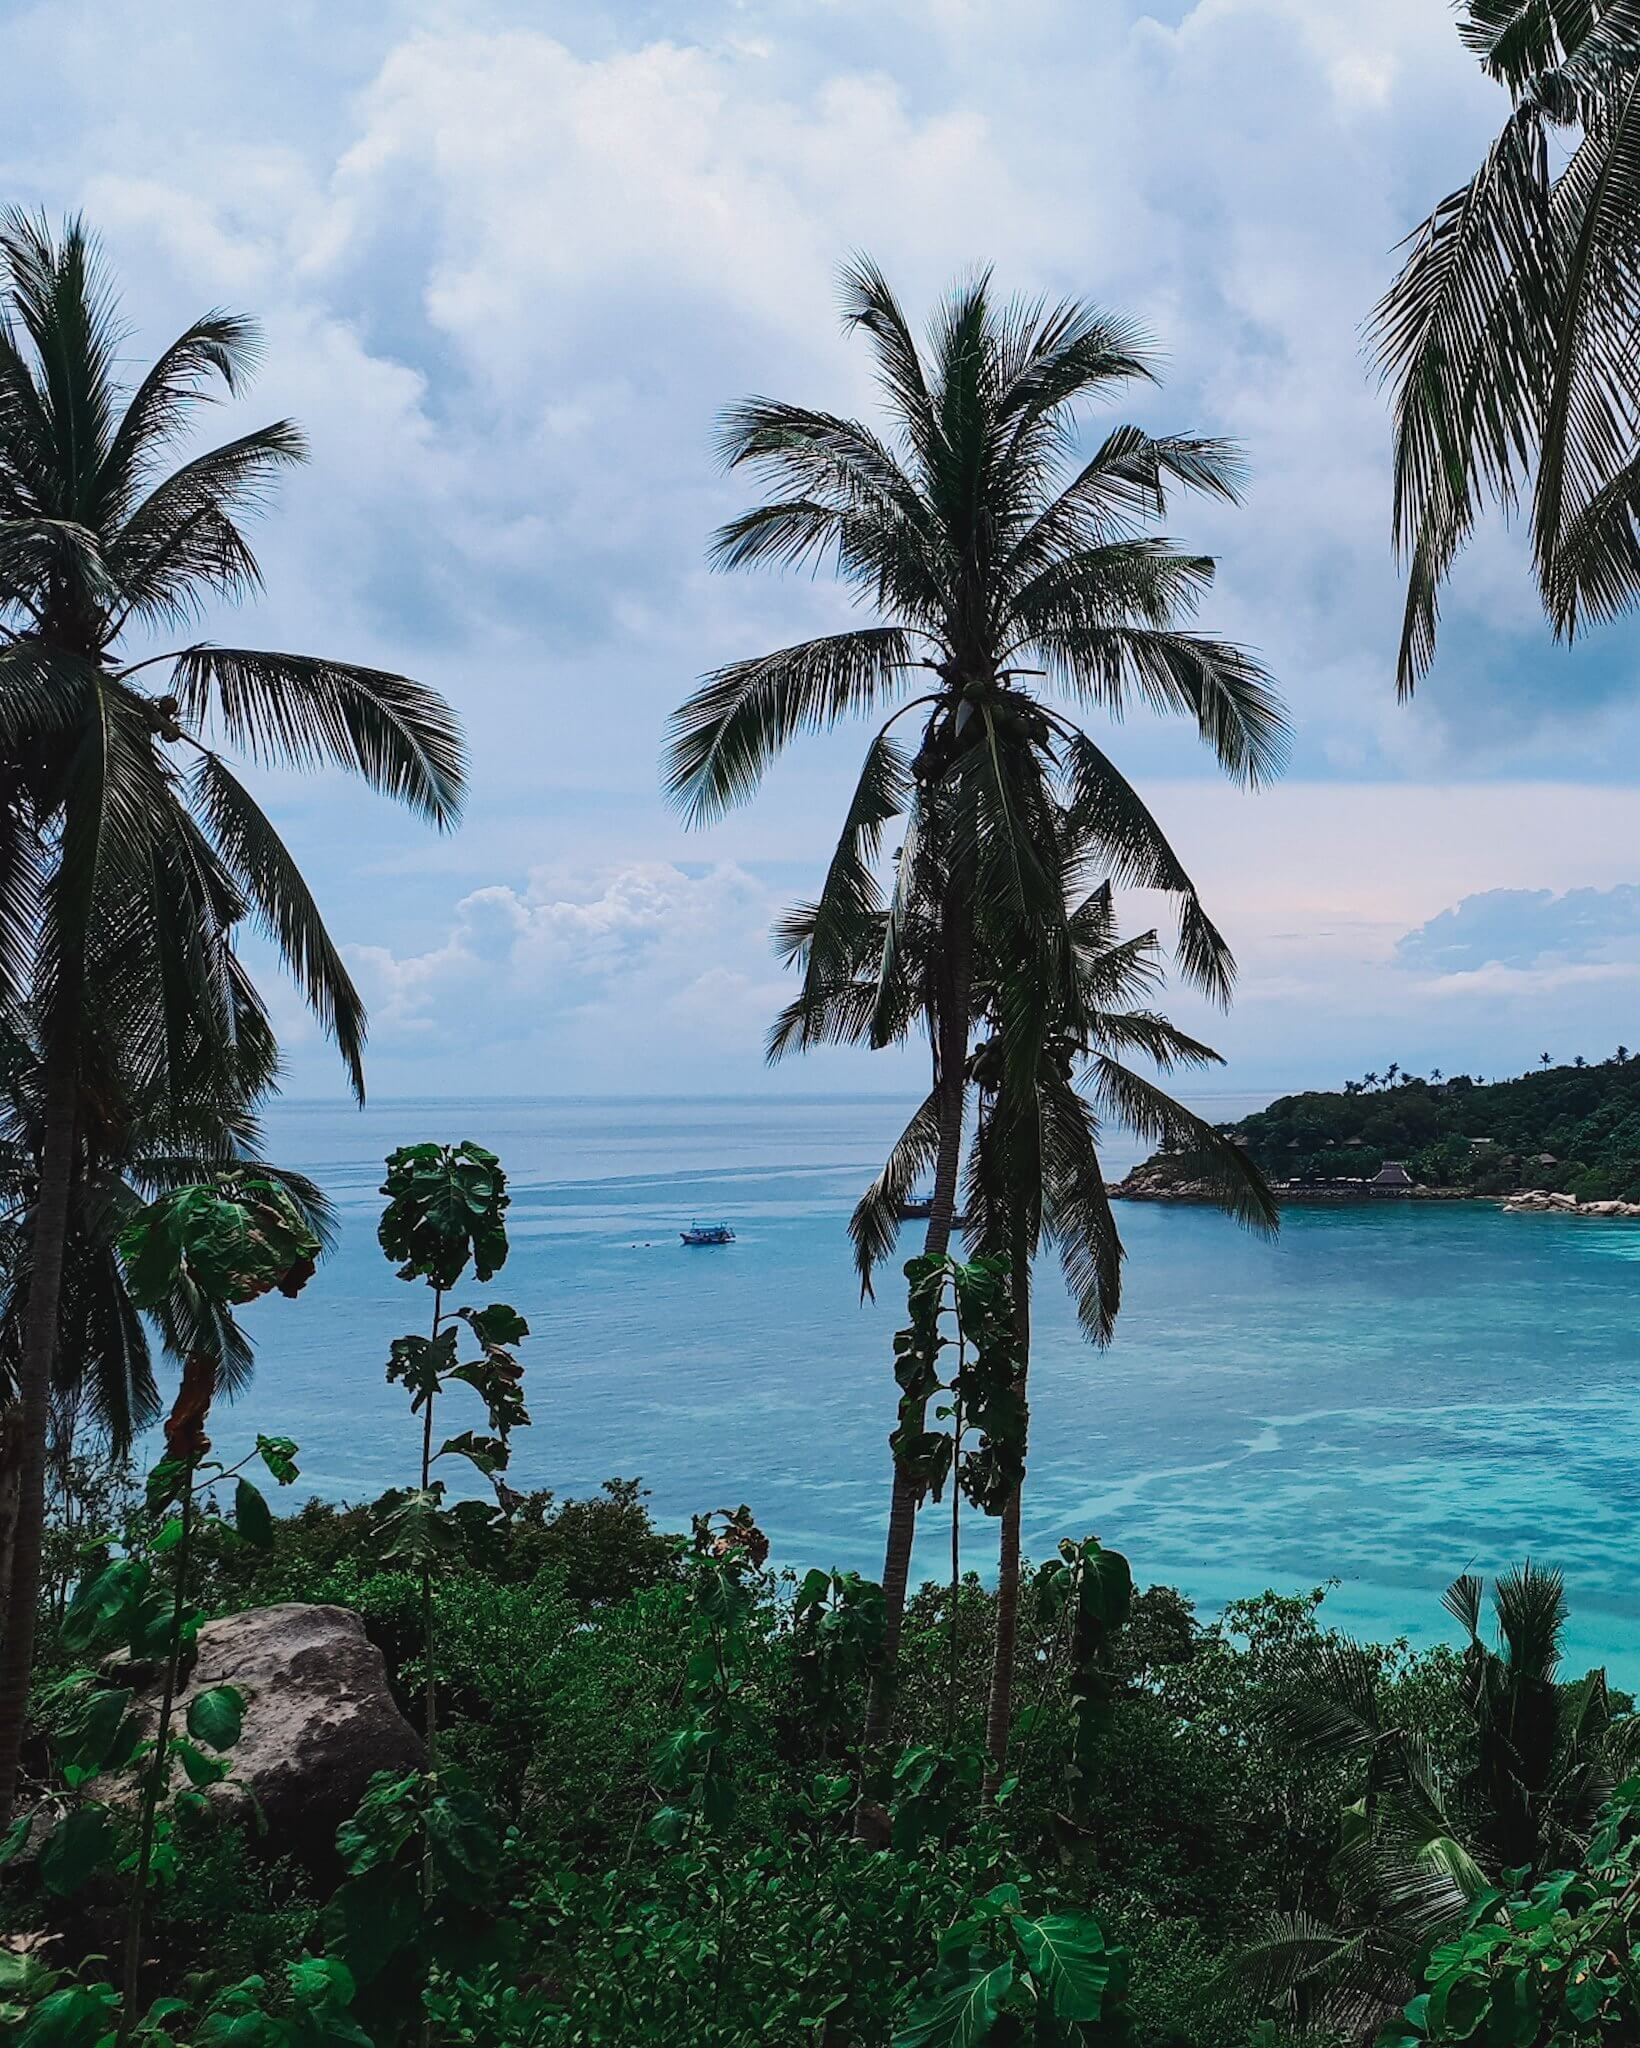 Koh Tao with all it's palm trees